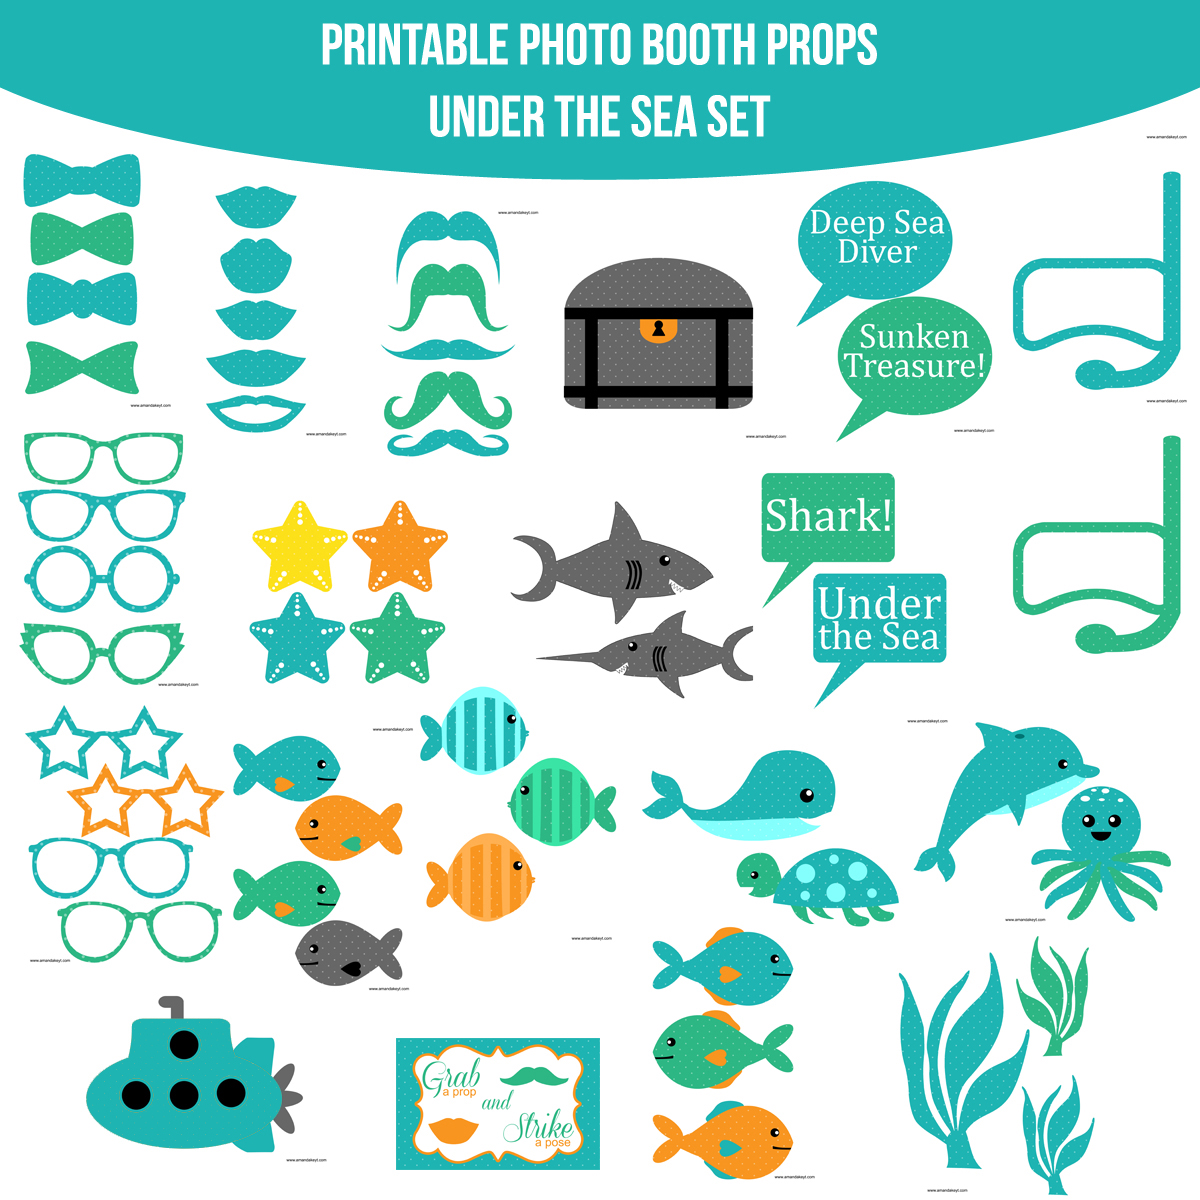 See the Set - View the Whole Under the Sea Printable Photo Booth Prop Set Click Here